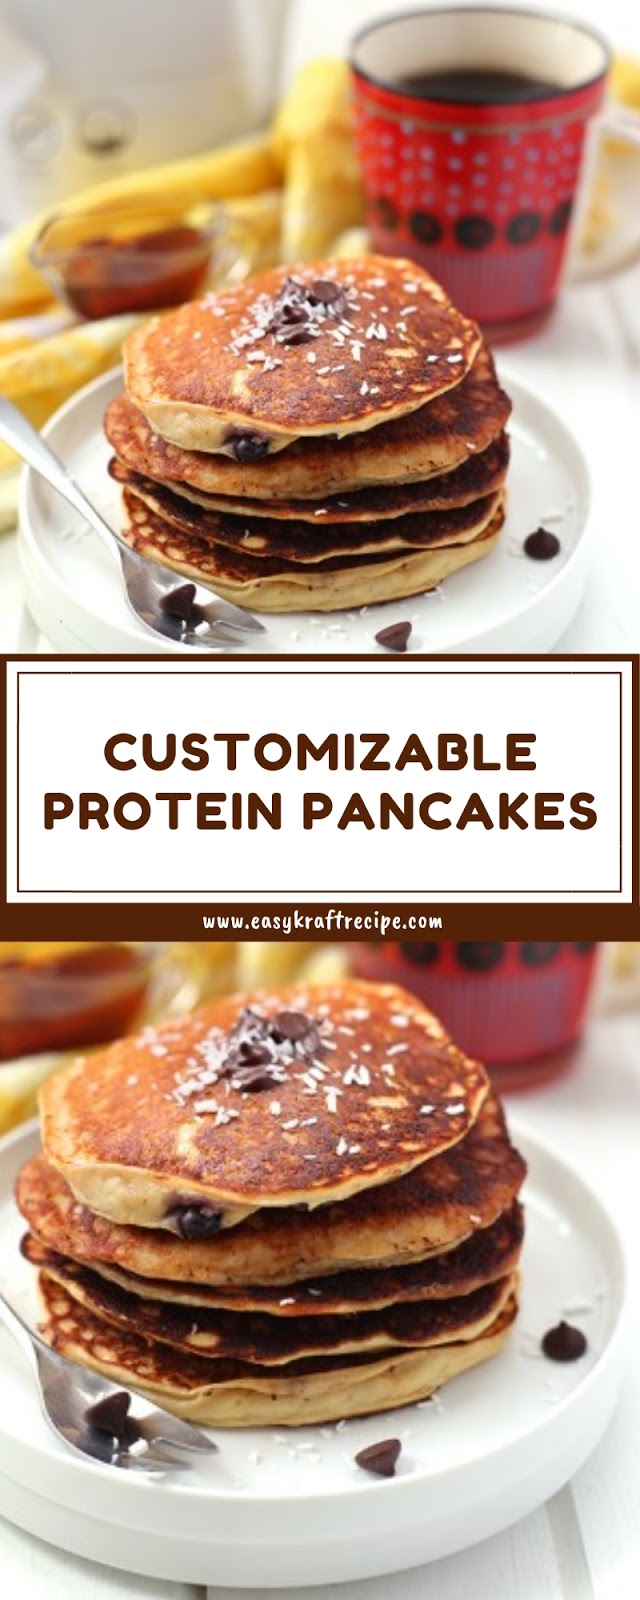 CUSTOMIZABLE PROTEIN PANCAKES